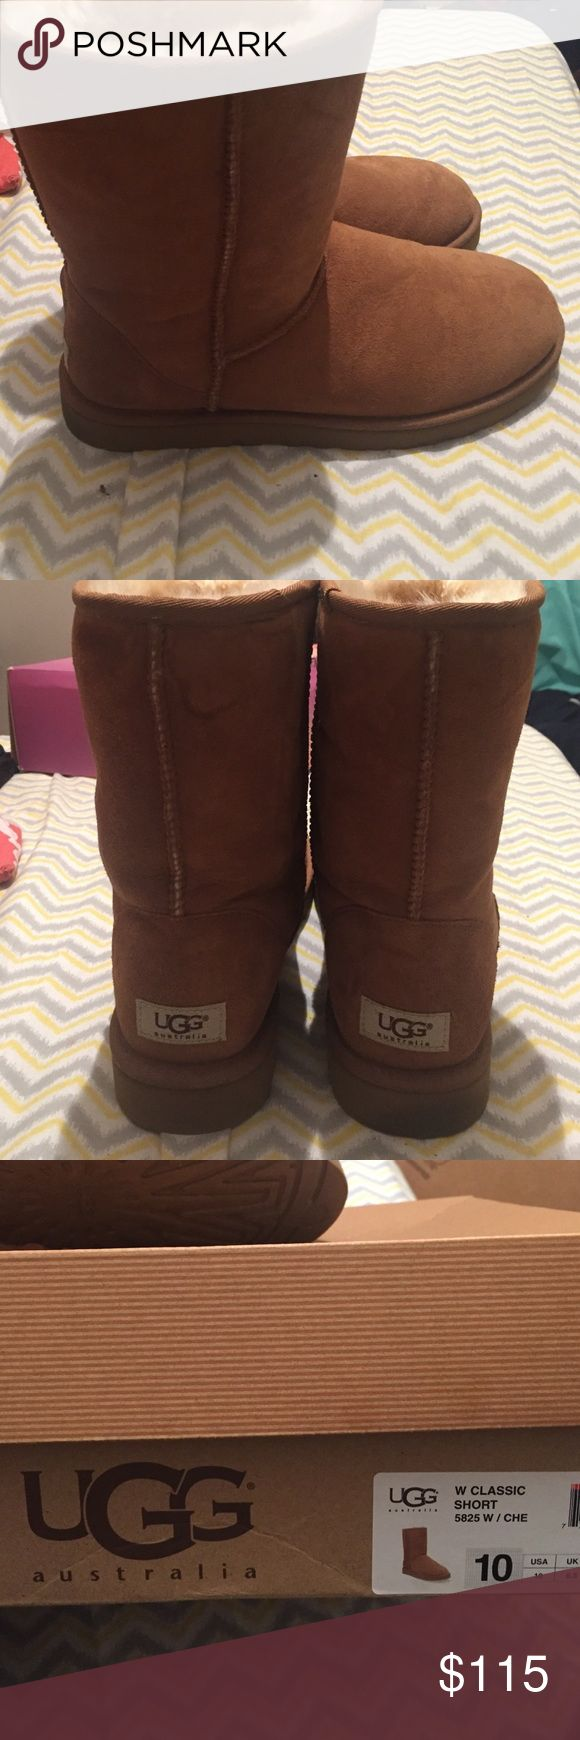 Warm & comfortable for the winter or summer. The boots are a size 10. I have two pairs and don't need this one. They were only worn once and in very good condition. I ordered them from the actual ugg store. UGG Shoes Winter & Rain Boots